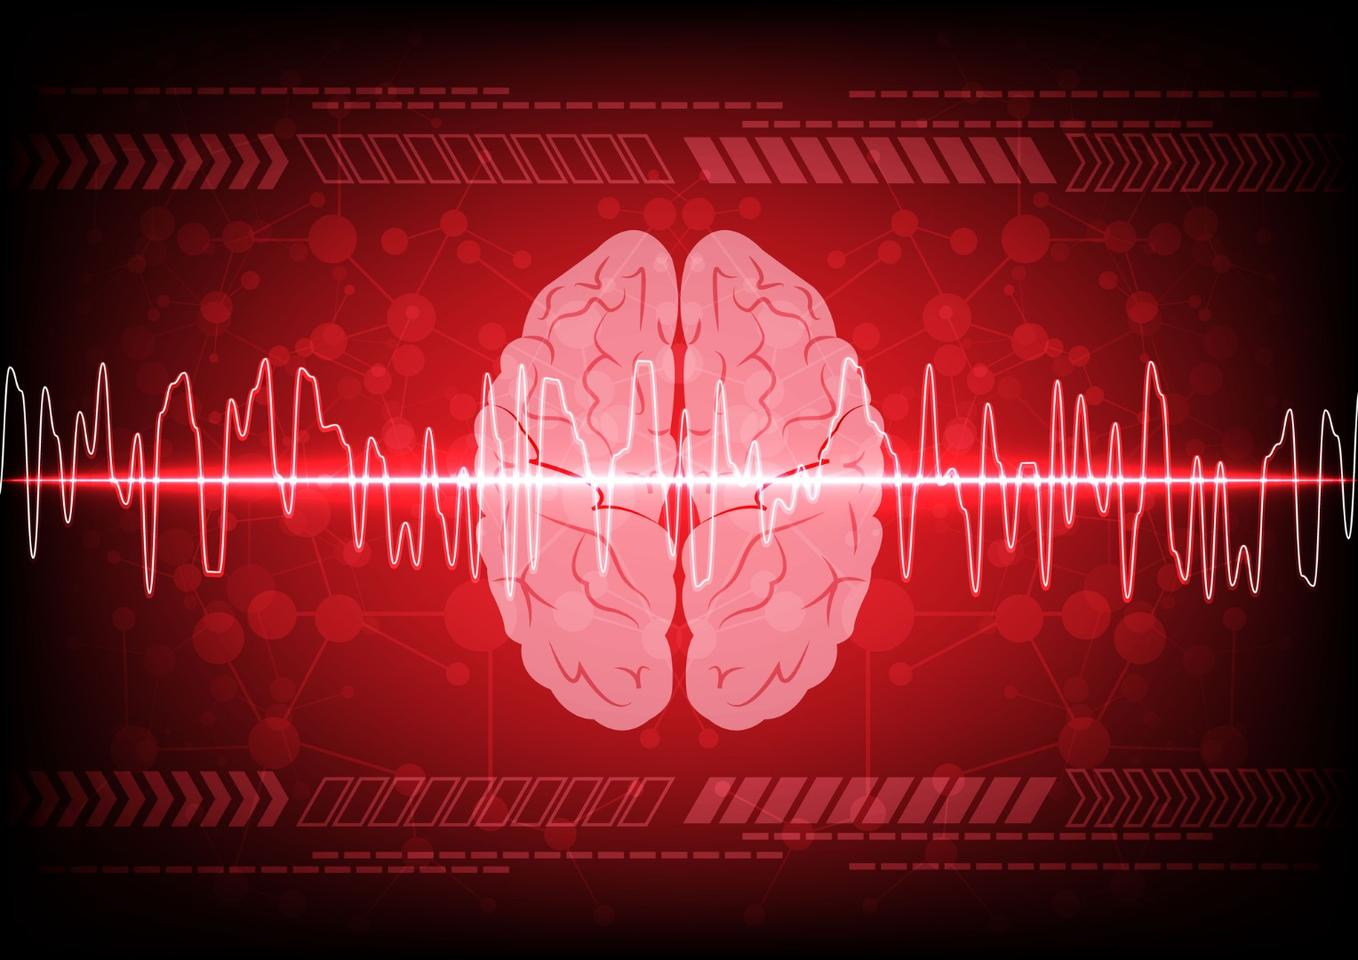 Using machine learning,scientists could identify patterns of hidden consciousness in EEG data from unresponsive patients, and predict their likelihood of recovery